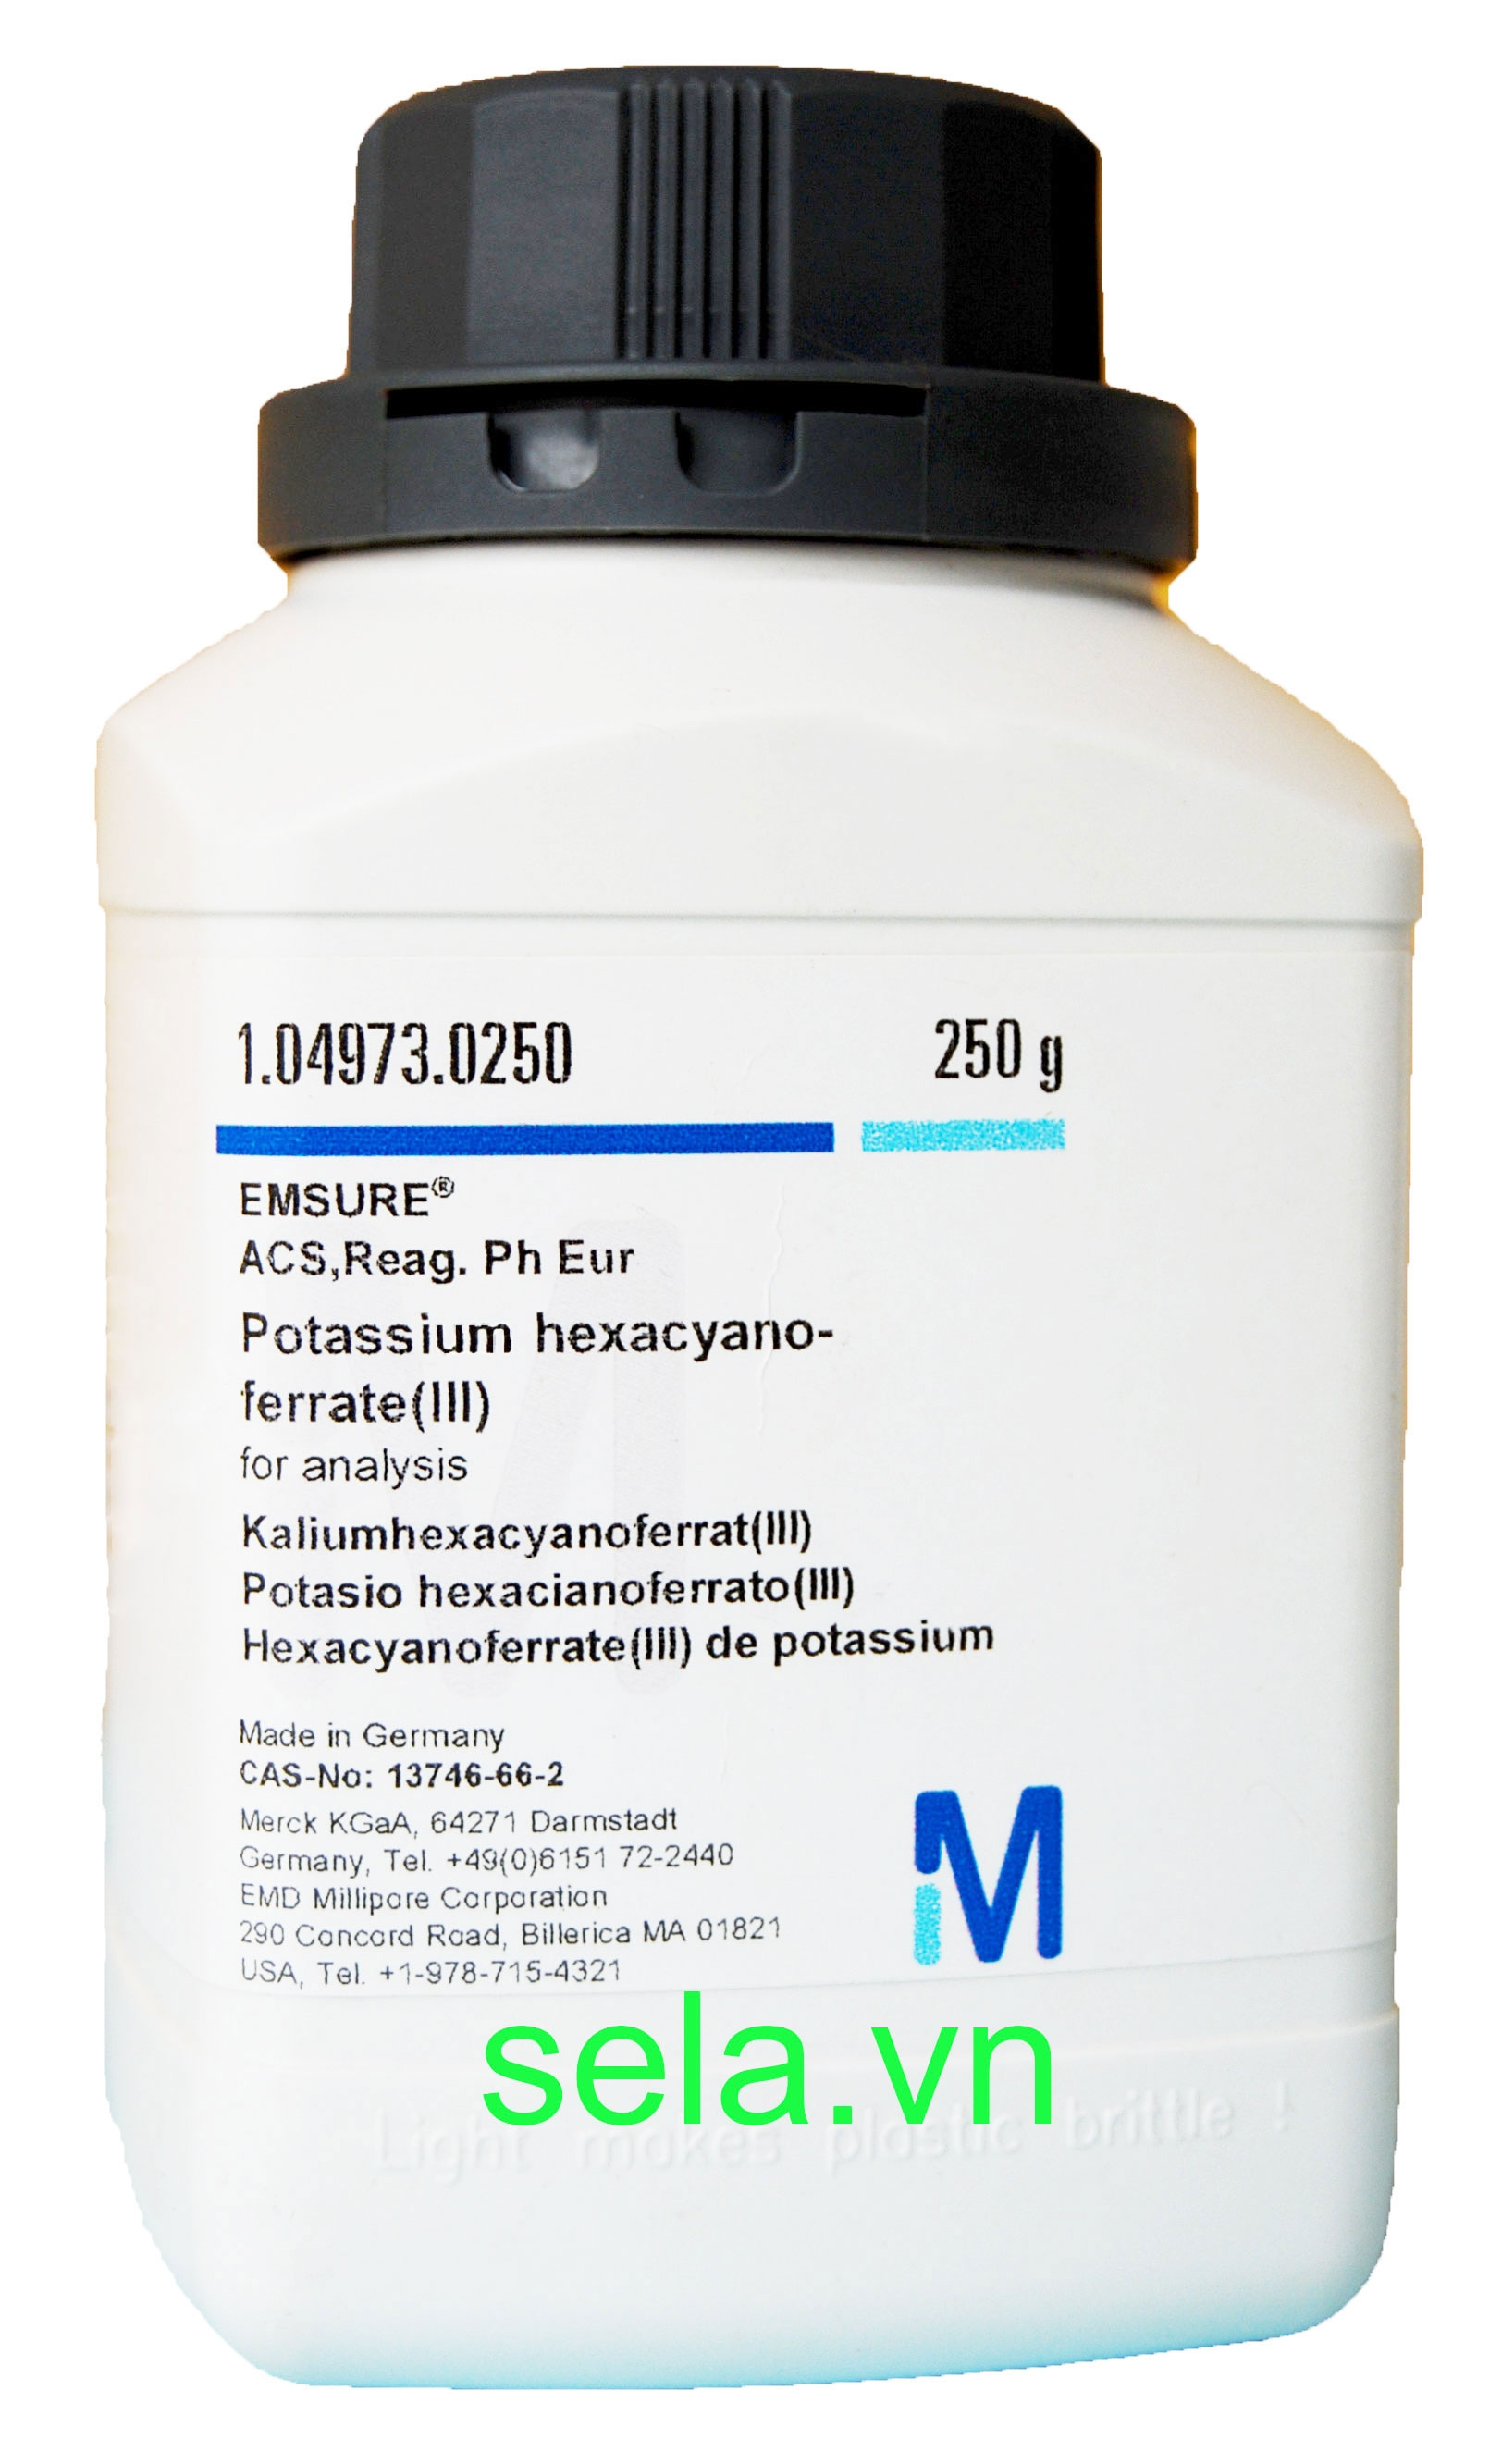 Potassium hexacyanoferrate(III) for analysis EMSURE® ACS,Reag. Ph Eur